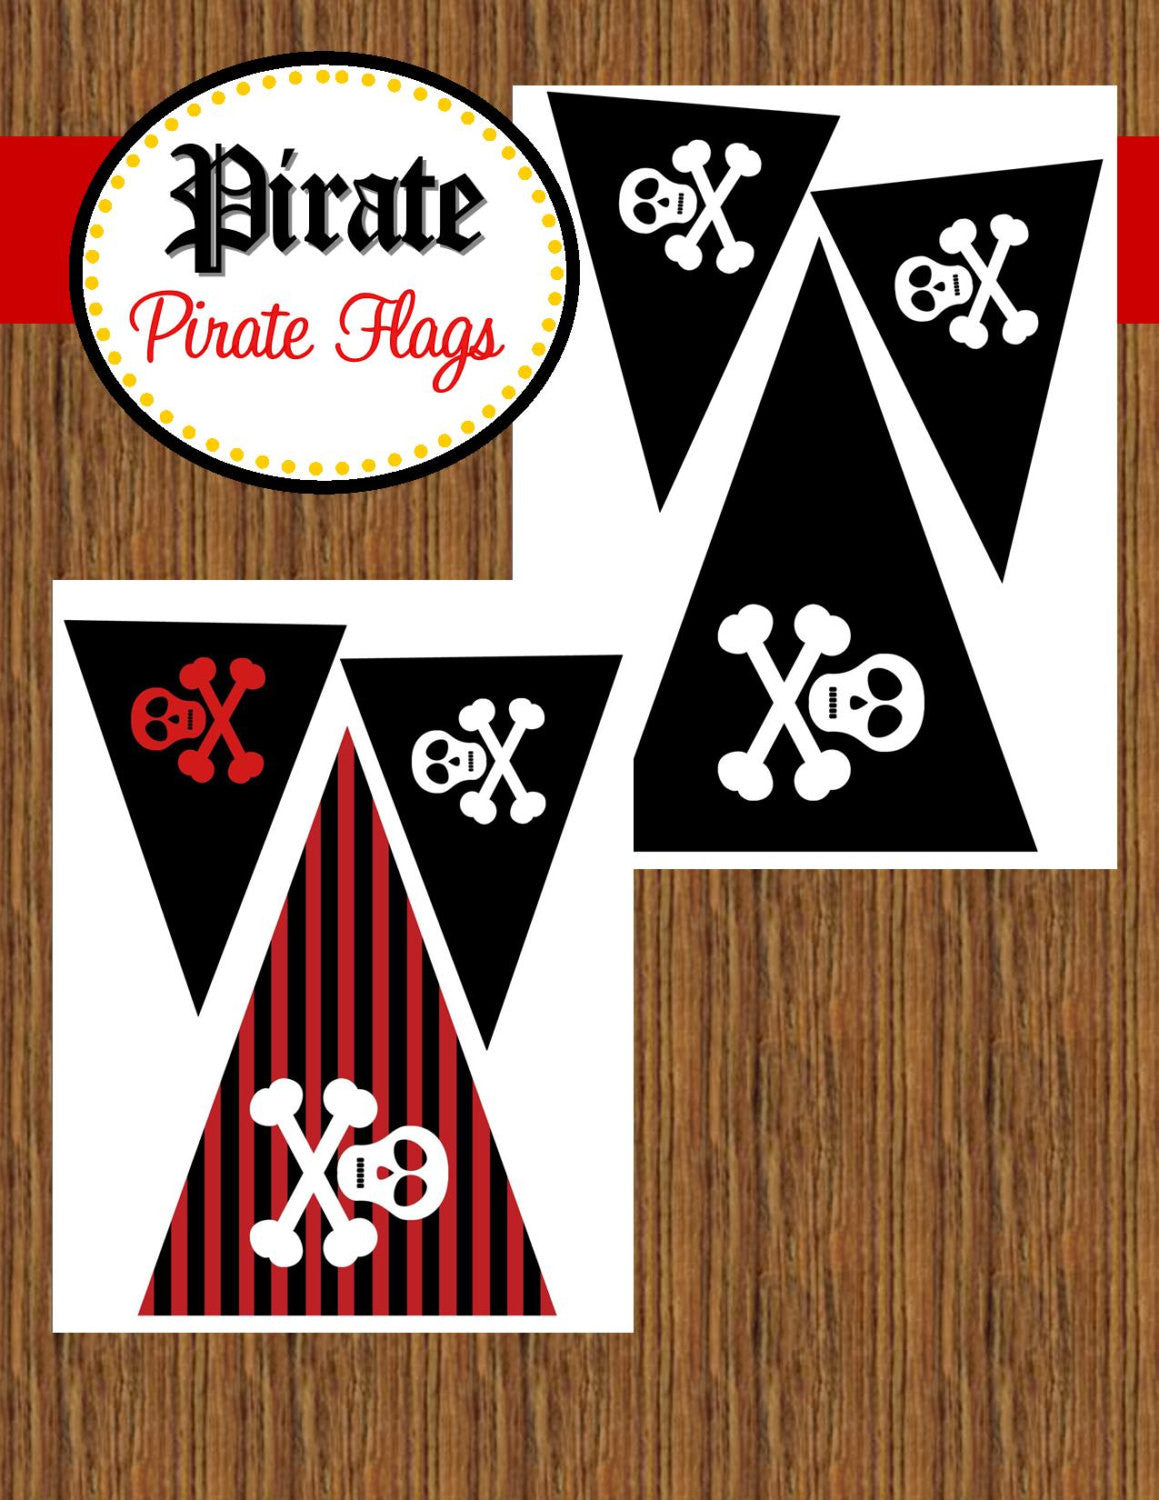 graphic regarding Pirate Flag Printable identified as PIRATE Birthday Get together - Pirate Video games - Pirate Social gathering Online games- Printable Signs and symptoms - Boys Birthday Get together - Pirate Send out - Lady Pirate Occasion - Pirate Get together -